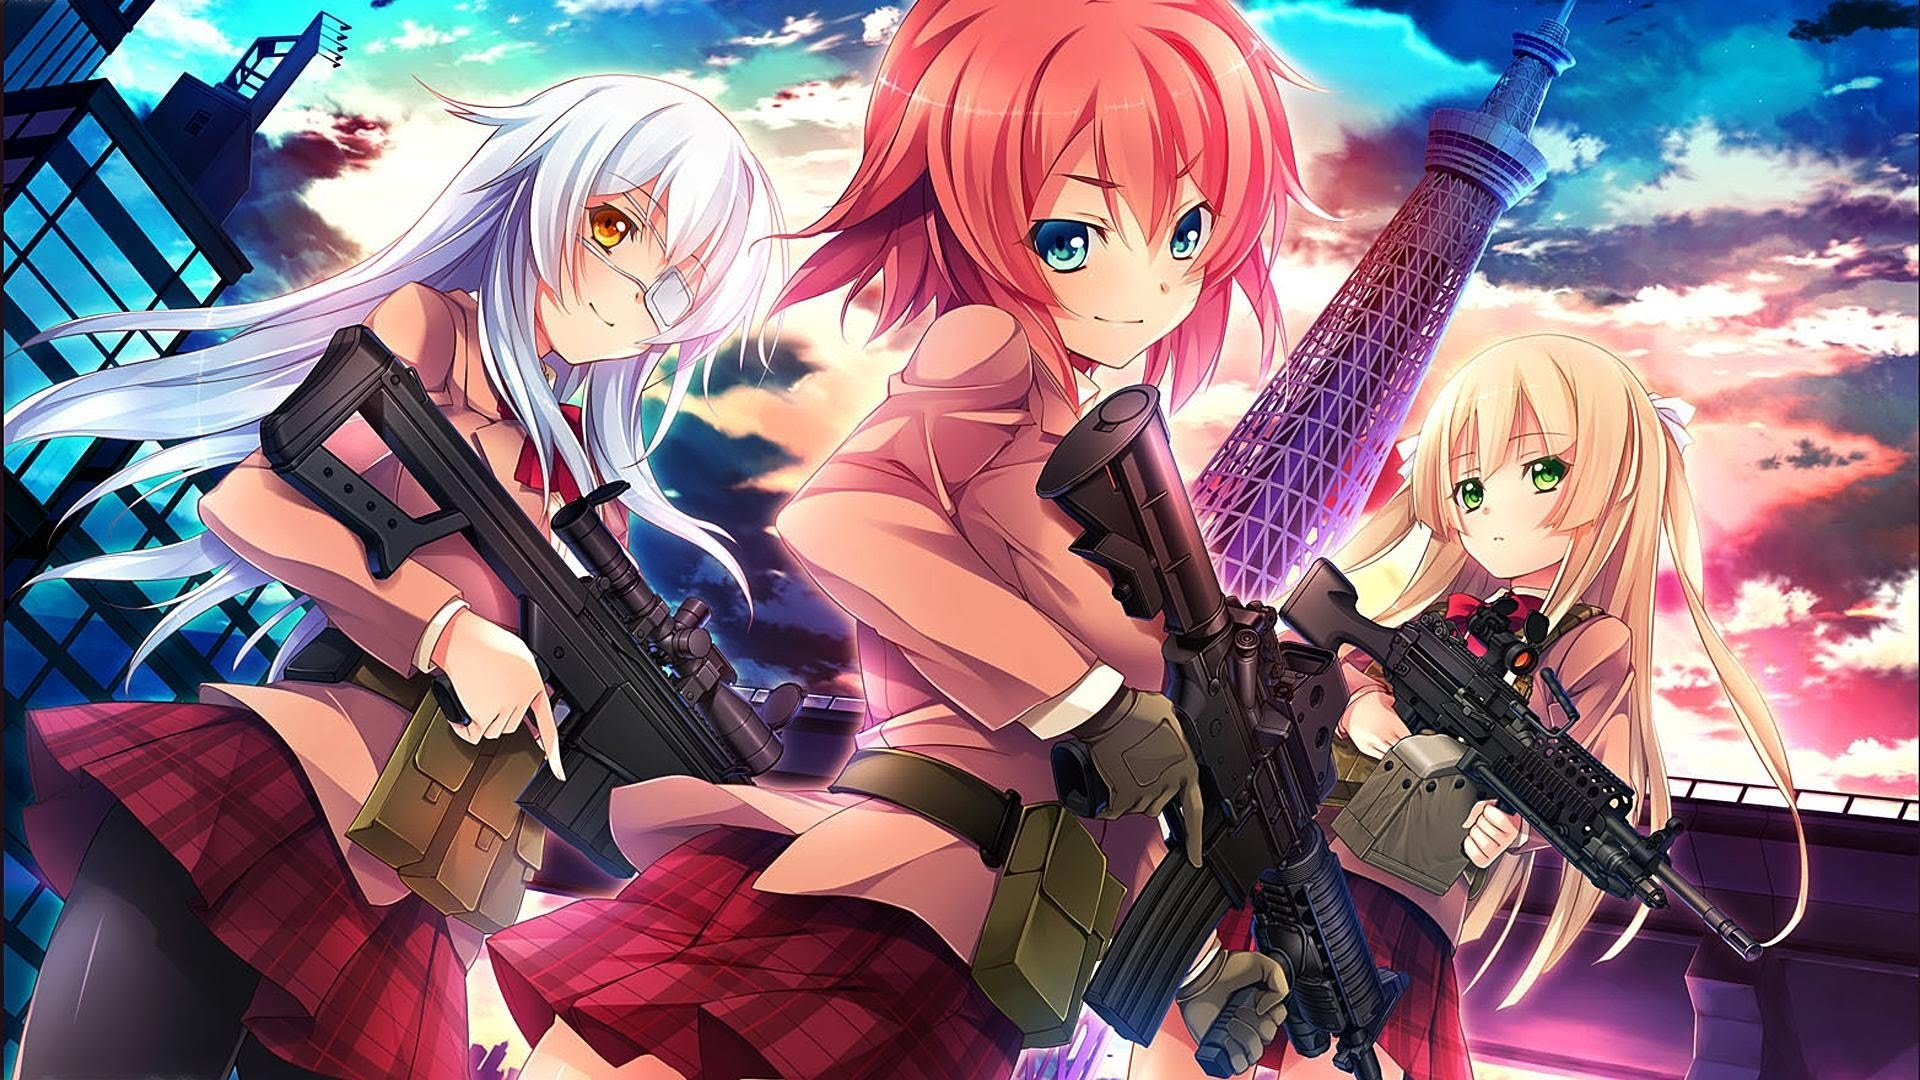 1920x1080 LASS GRAN ARMA | Anime Girls with Weapons ❤ | Pinterest | Art boards and  Anime